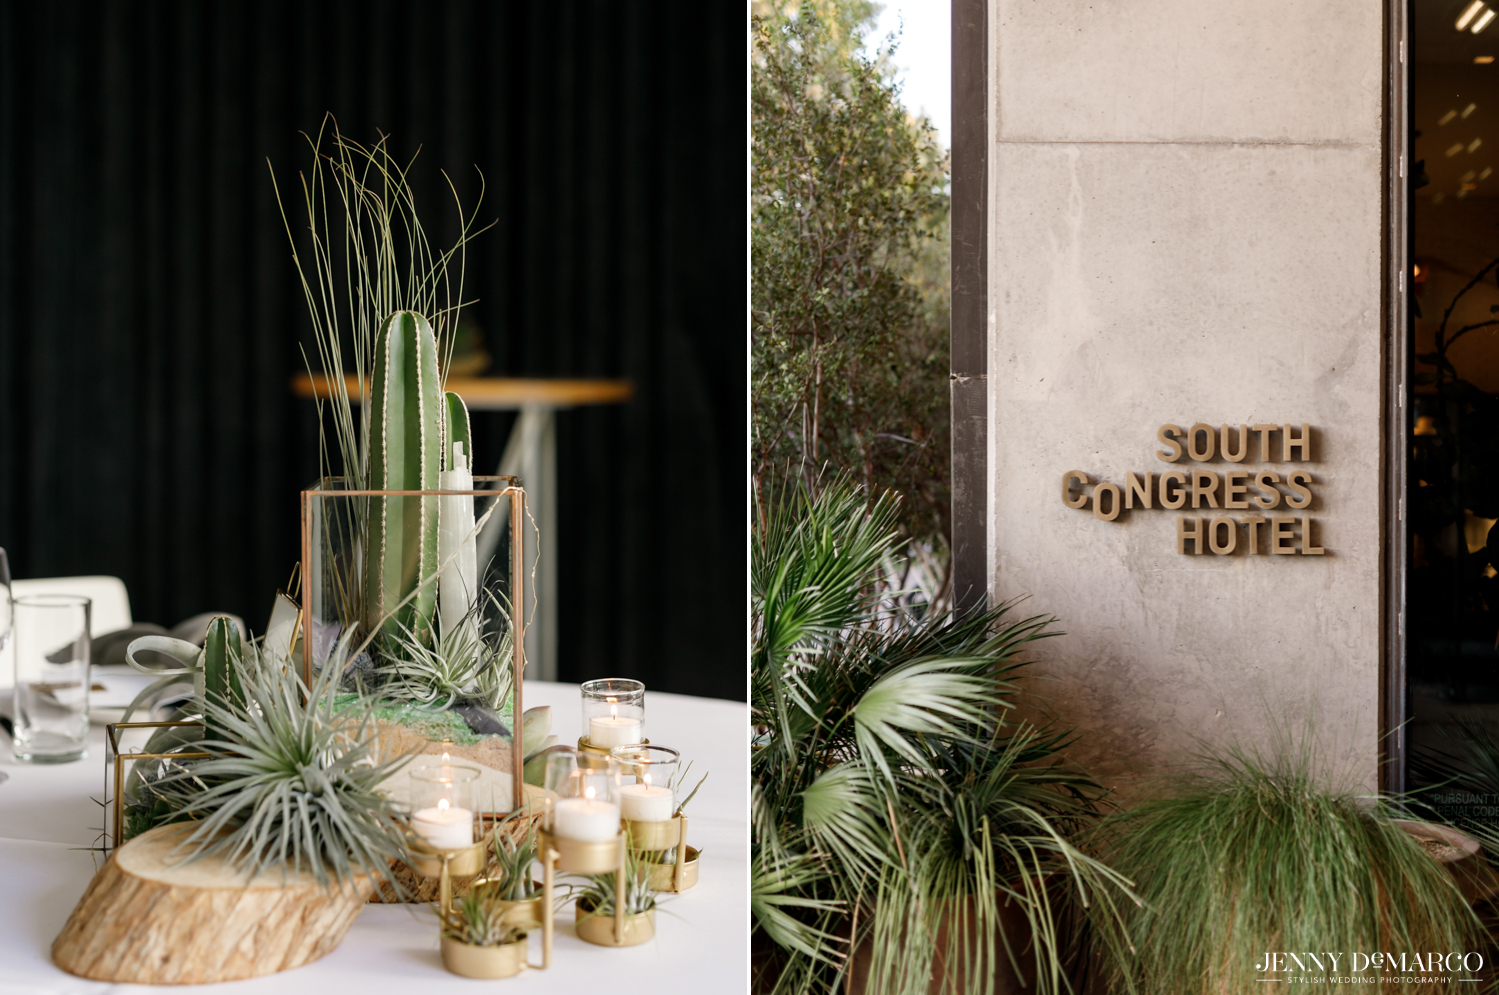 Left: Reception table decorations of cactus and greenery; Right: South Congress Hotel sign